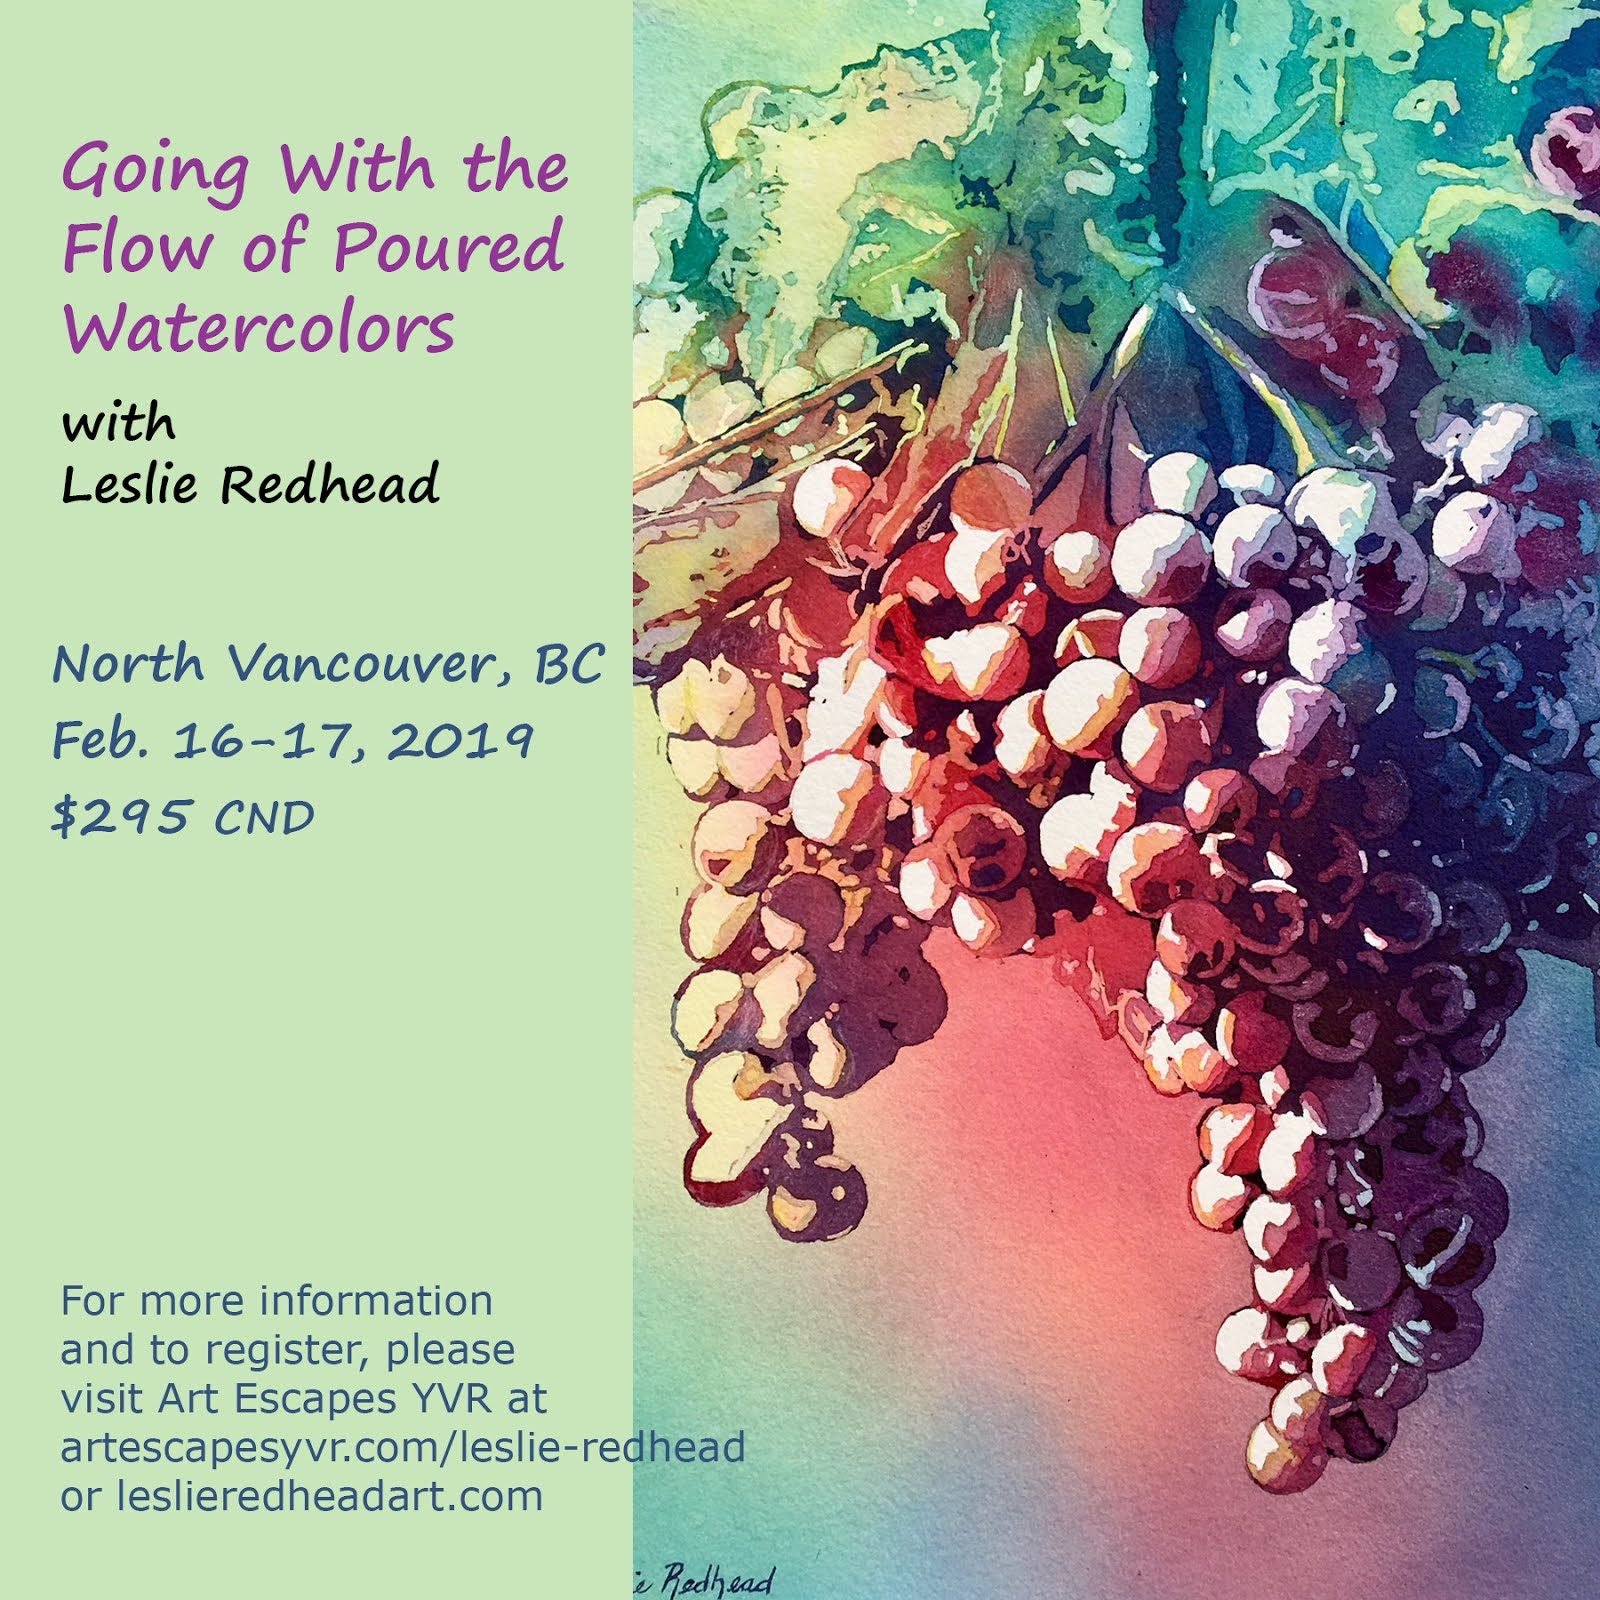 Pouring Watercolor Workshop